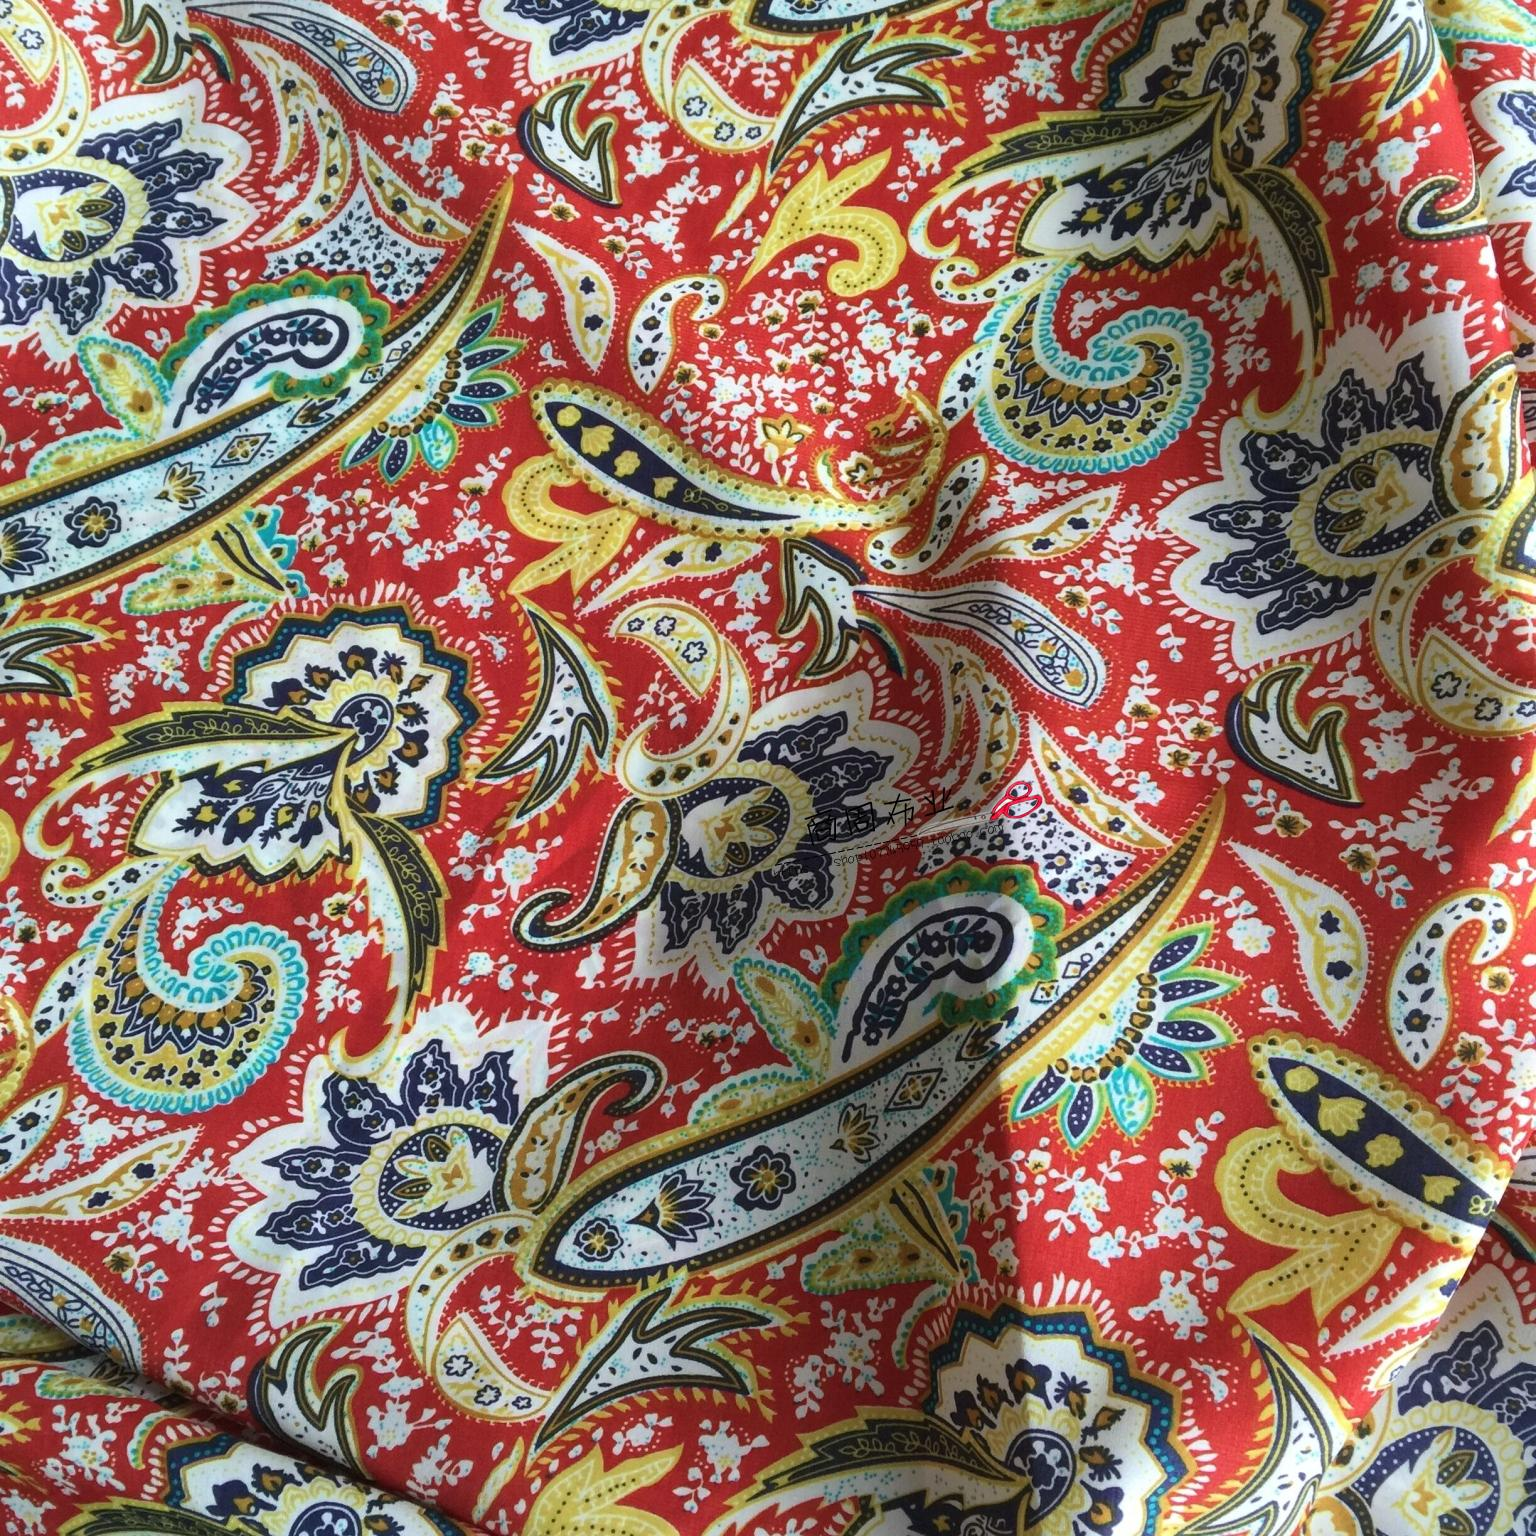 Paisley print korea cashmere chiffon fabric impervious for Apparel fabric